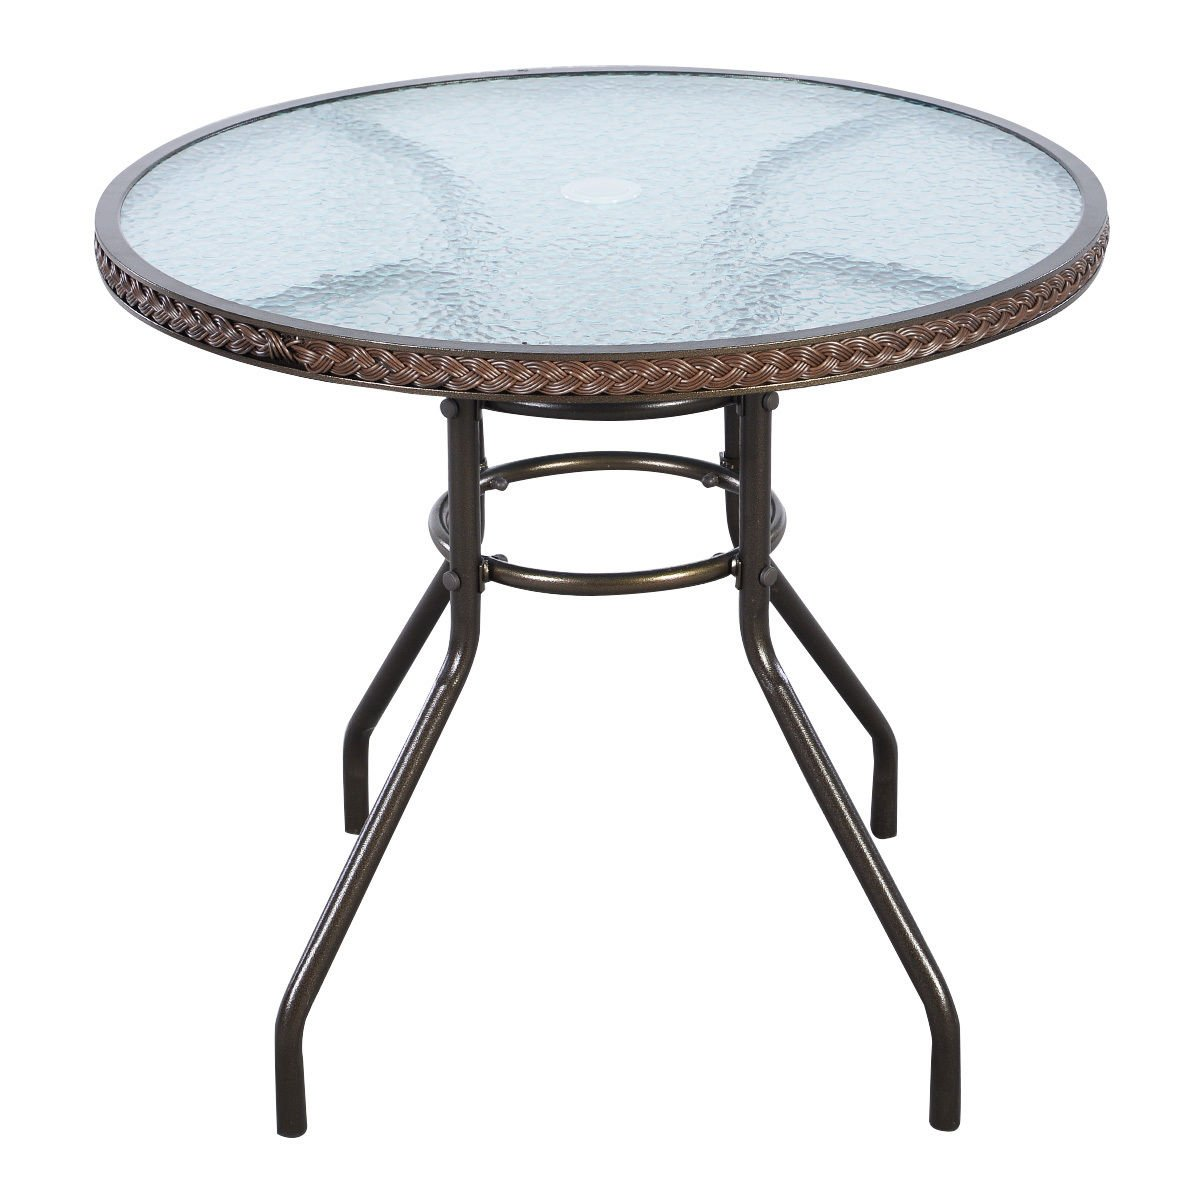 FDInspiration 31'' Brown Patio Rattan Round Tempered Glass Top Table w/Umbrella Hole